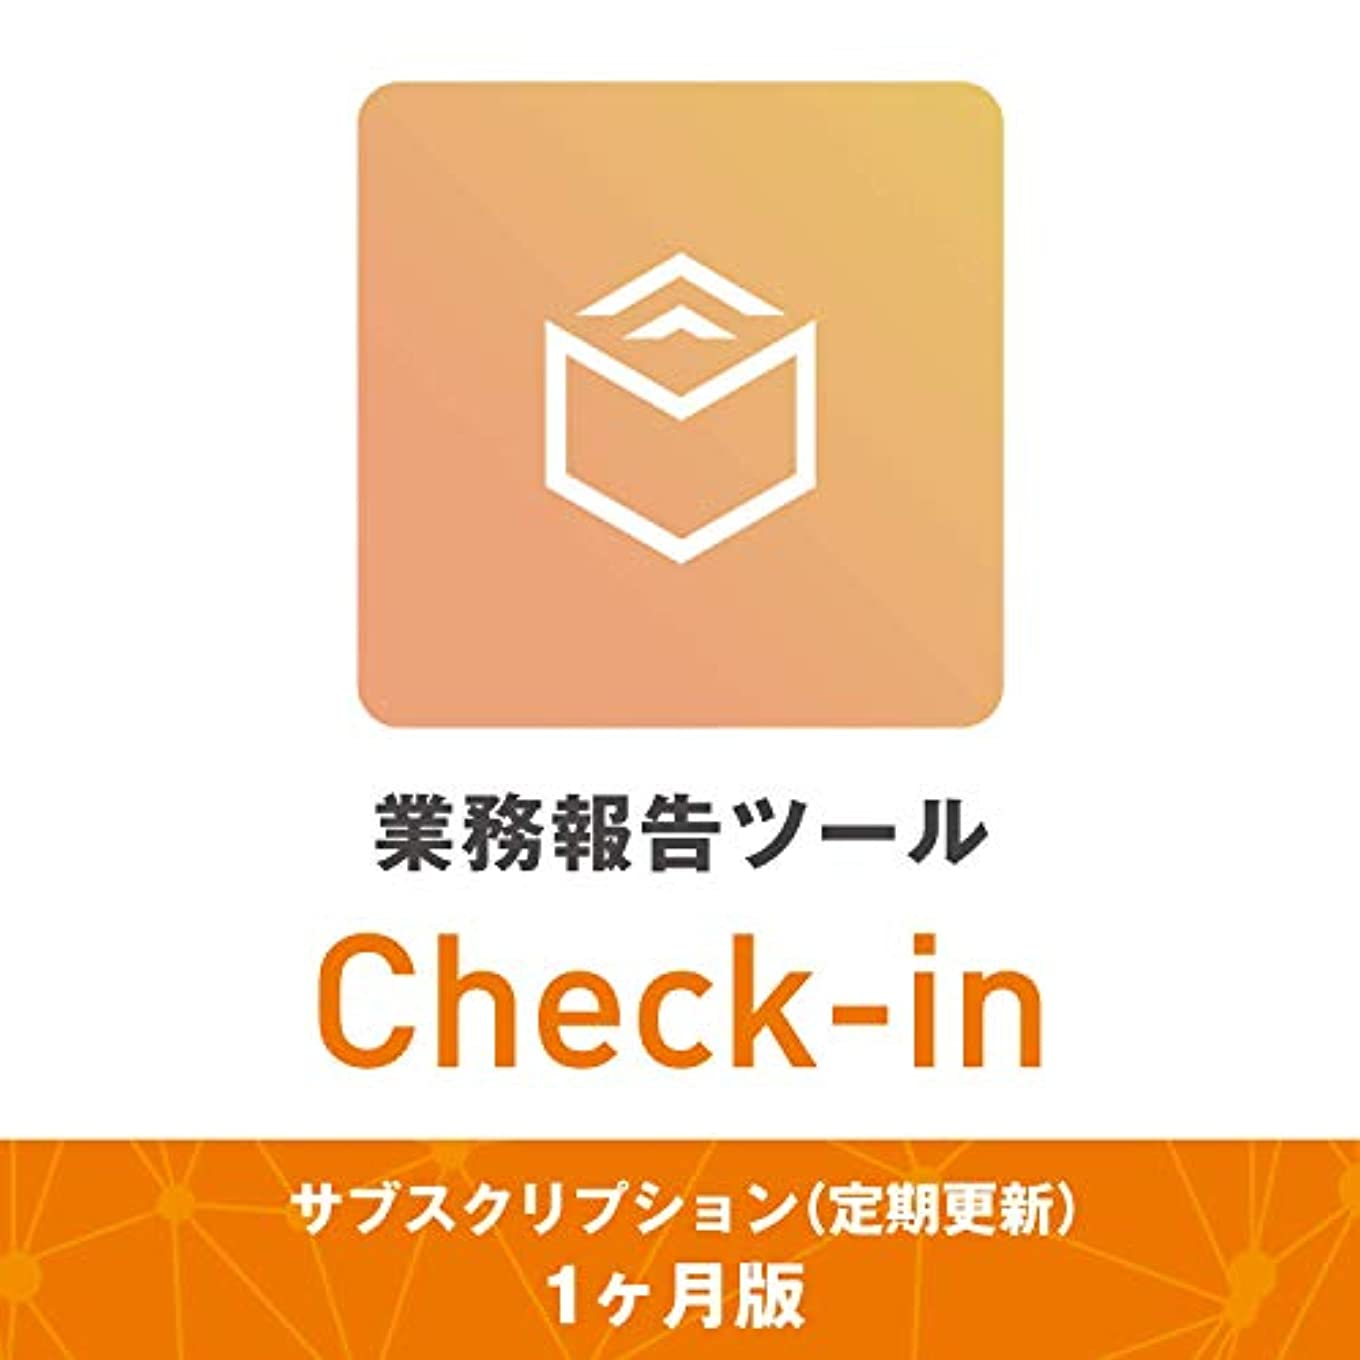 Check-in 1か月版 サブスクリプション(定期更新)